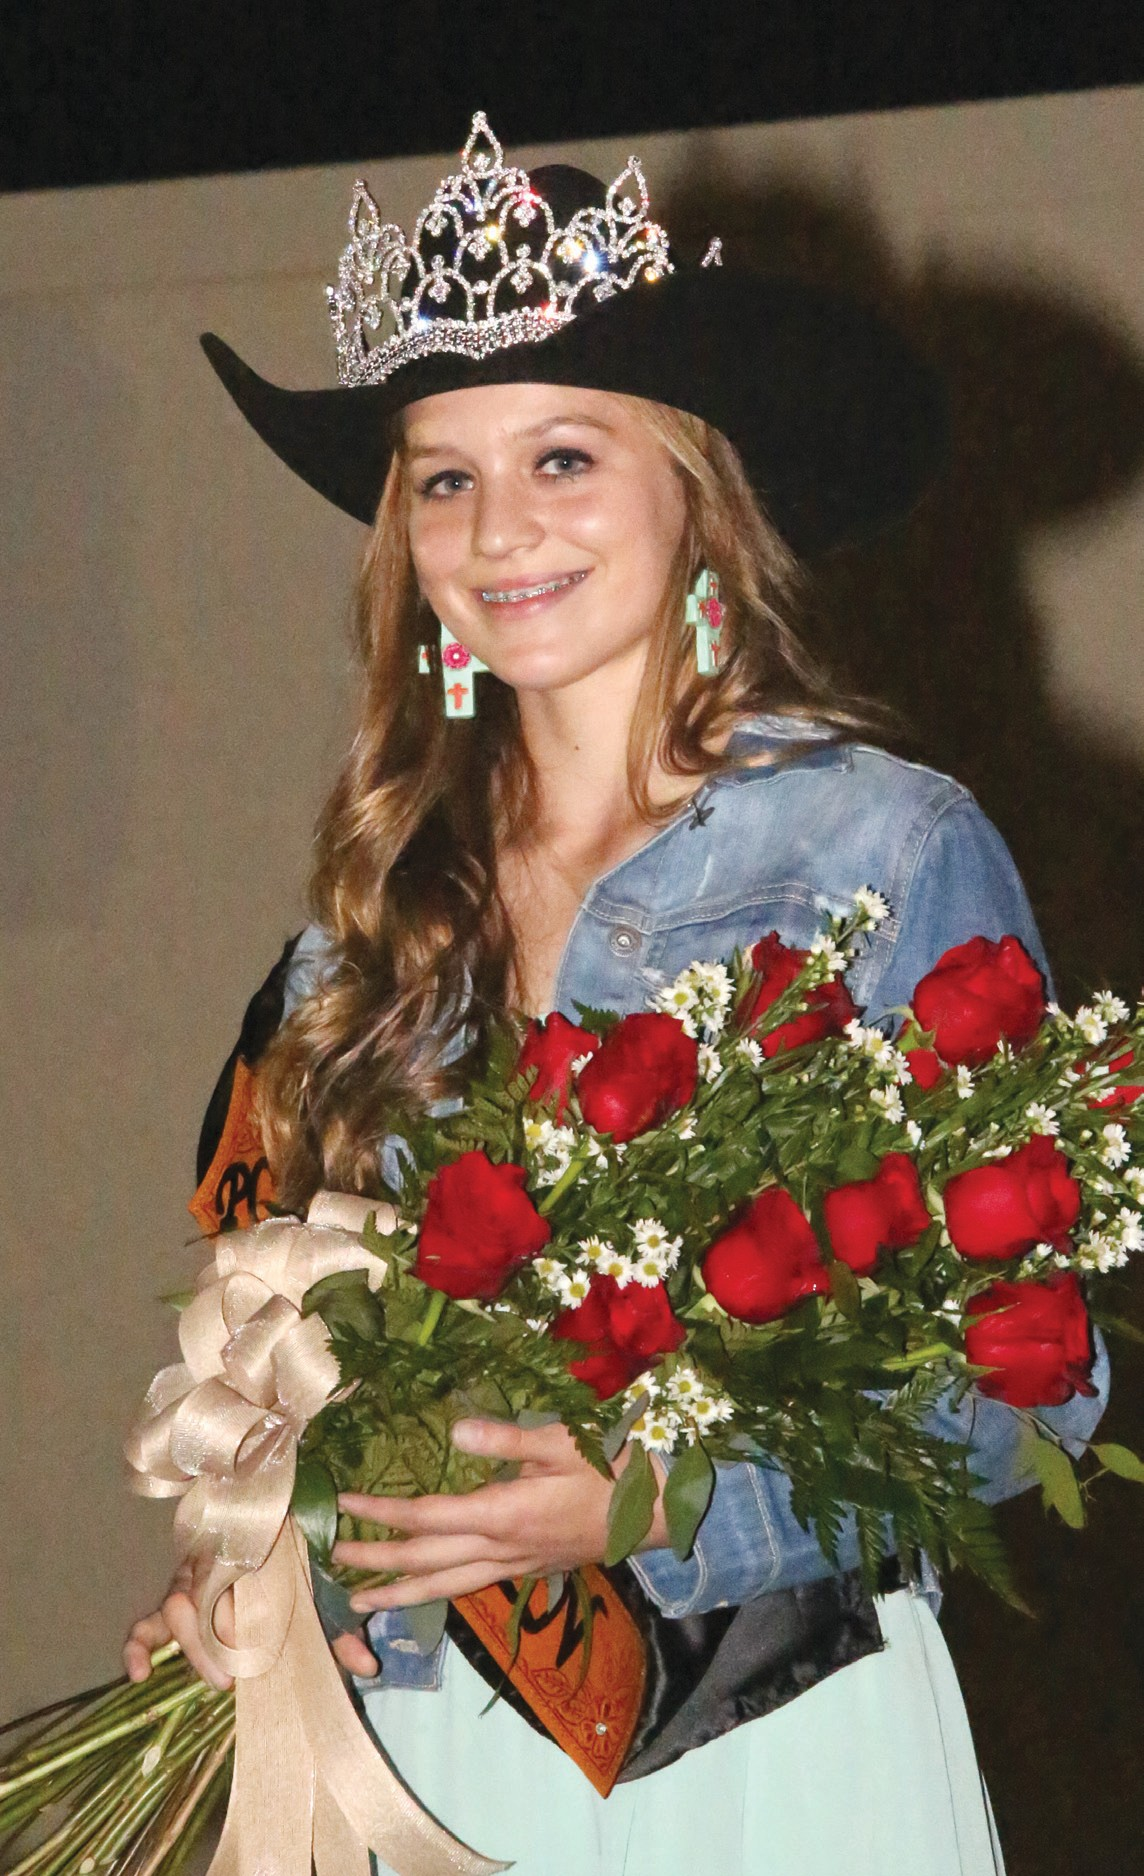 Jordyn Olle is crowned the 49th Cowboy Homecoming Queen at the coronation held Thursday, October 23 at the kick-off event.